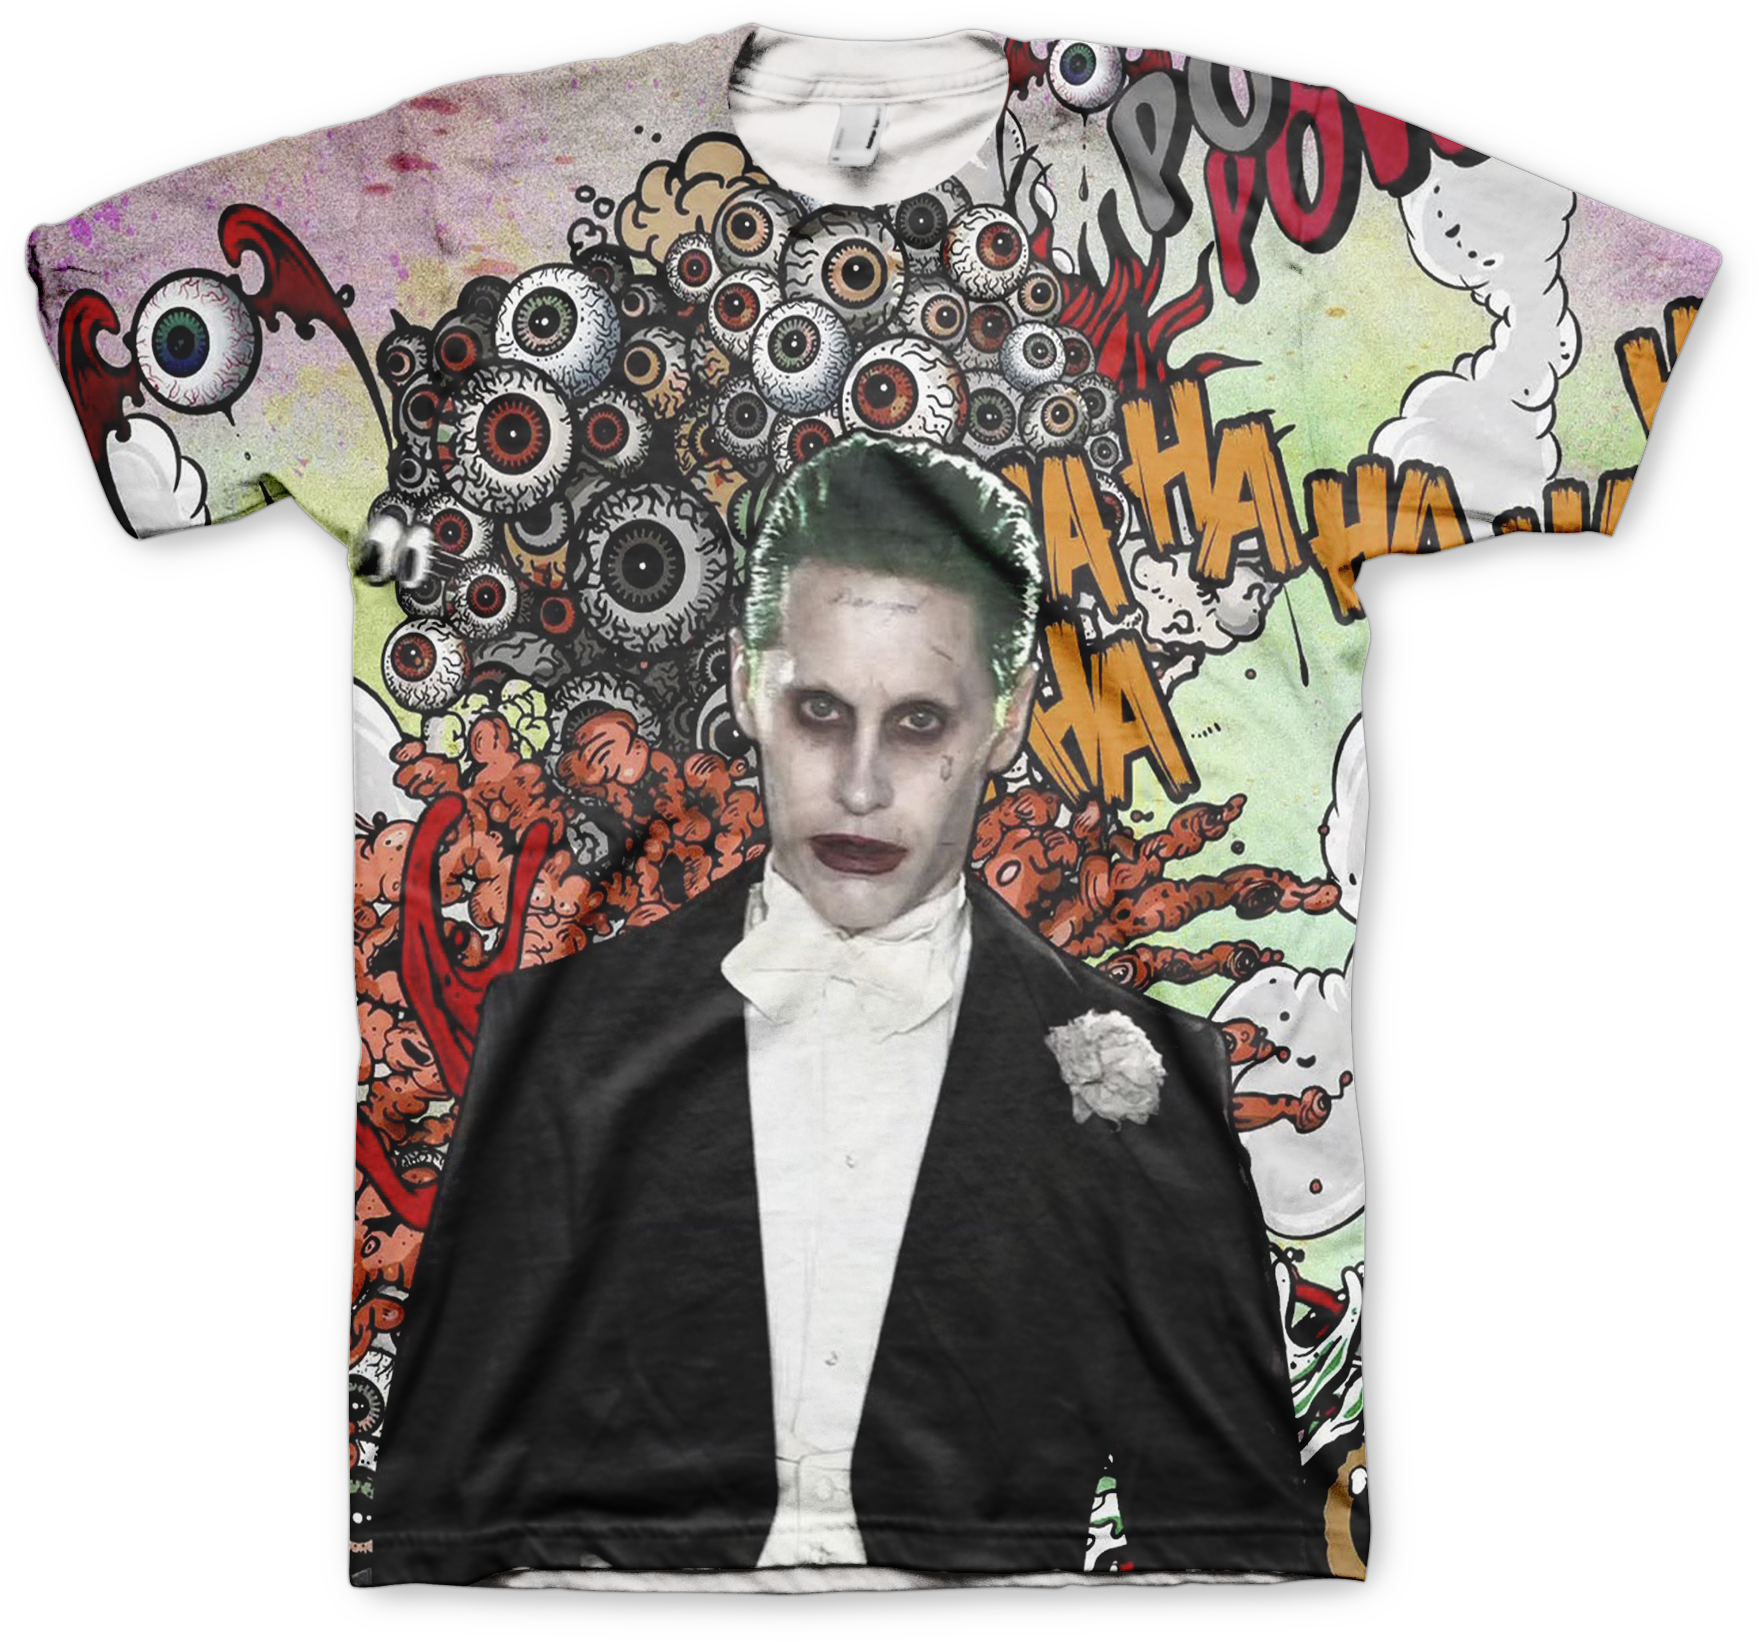 Joker Hd Suicide Squad Suicide Squad Joker And Batman Clipart Large Size Png Image Pikpng